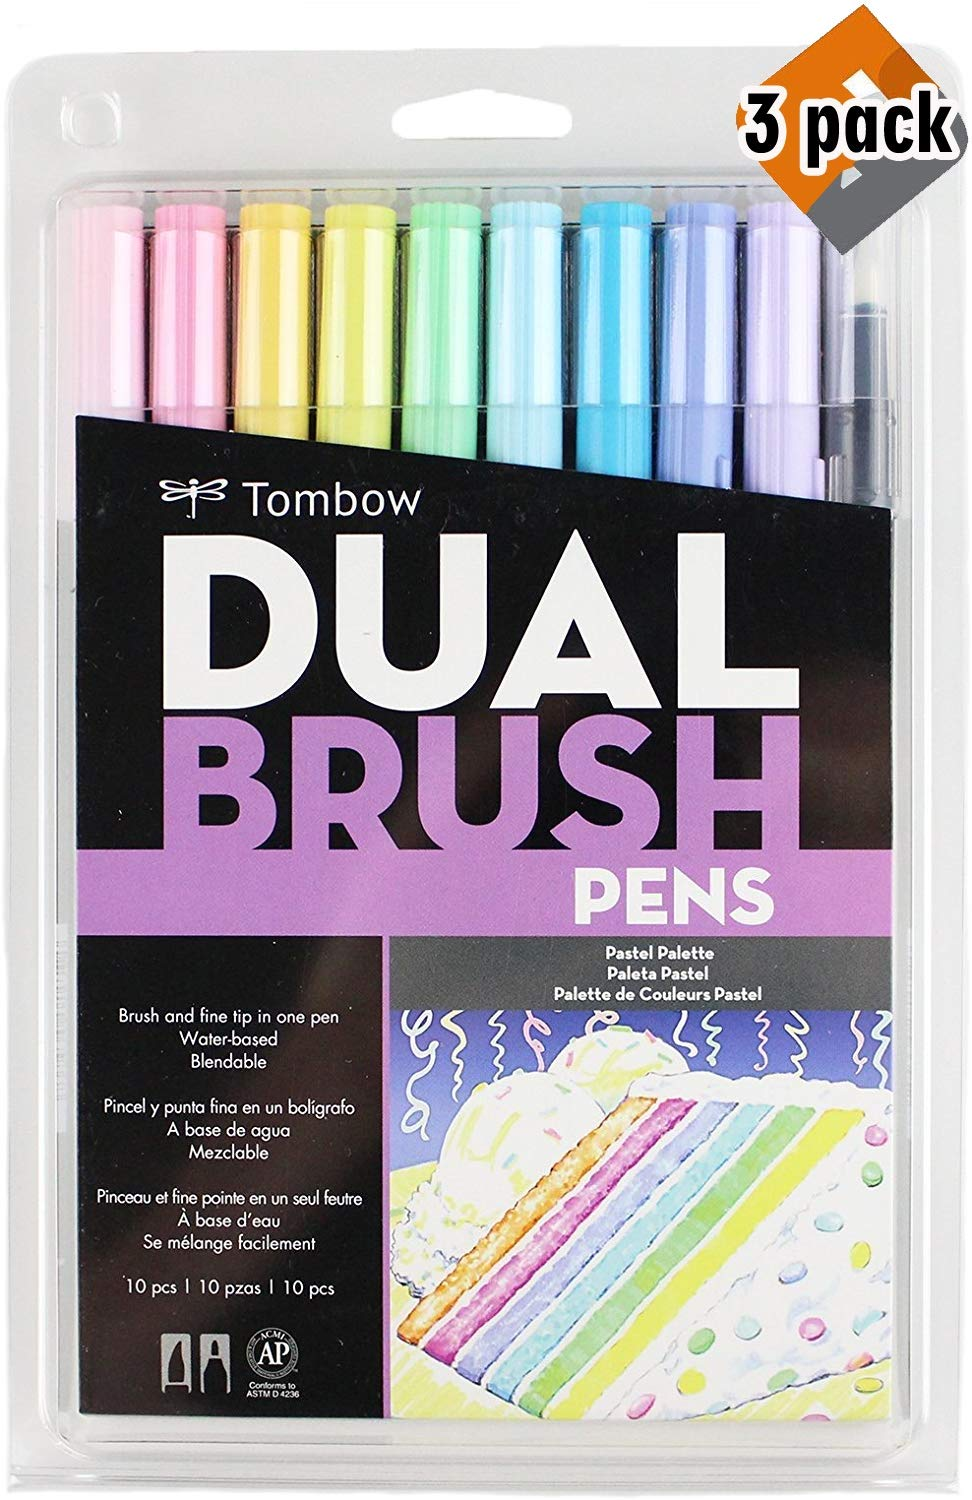 Tombow 56187 Dual Brush Pen Art Markers, Pastel, 10-Pack. Blendable, Brush and Fine Tip Markers - 3 Pack by Tombow